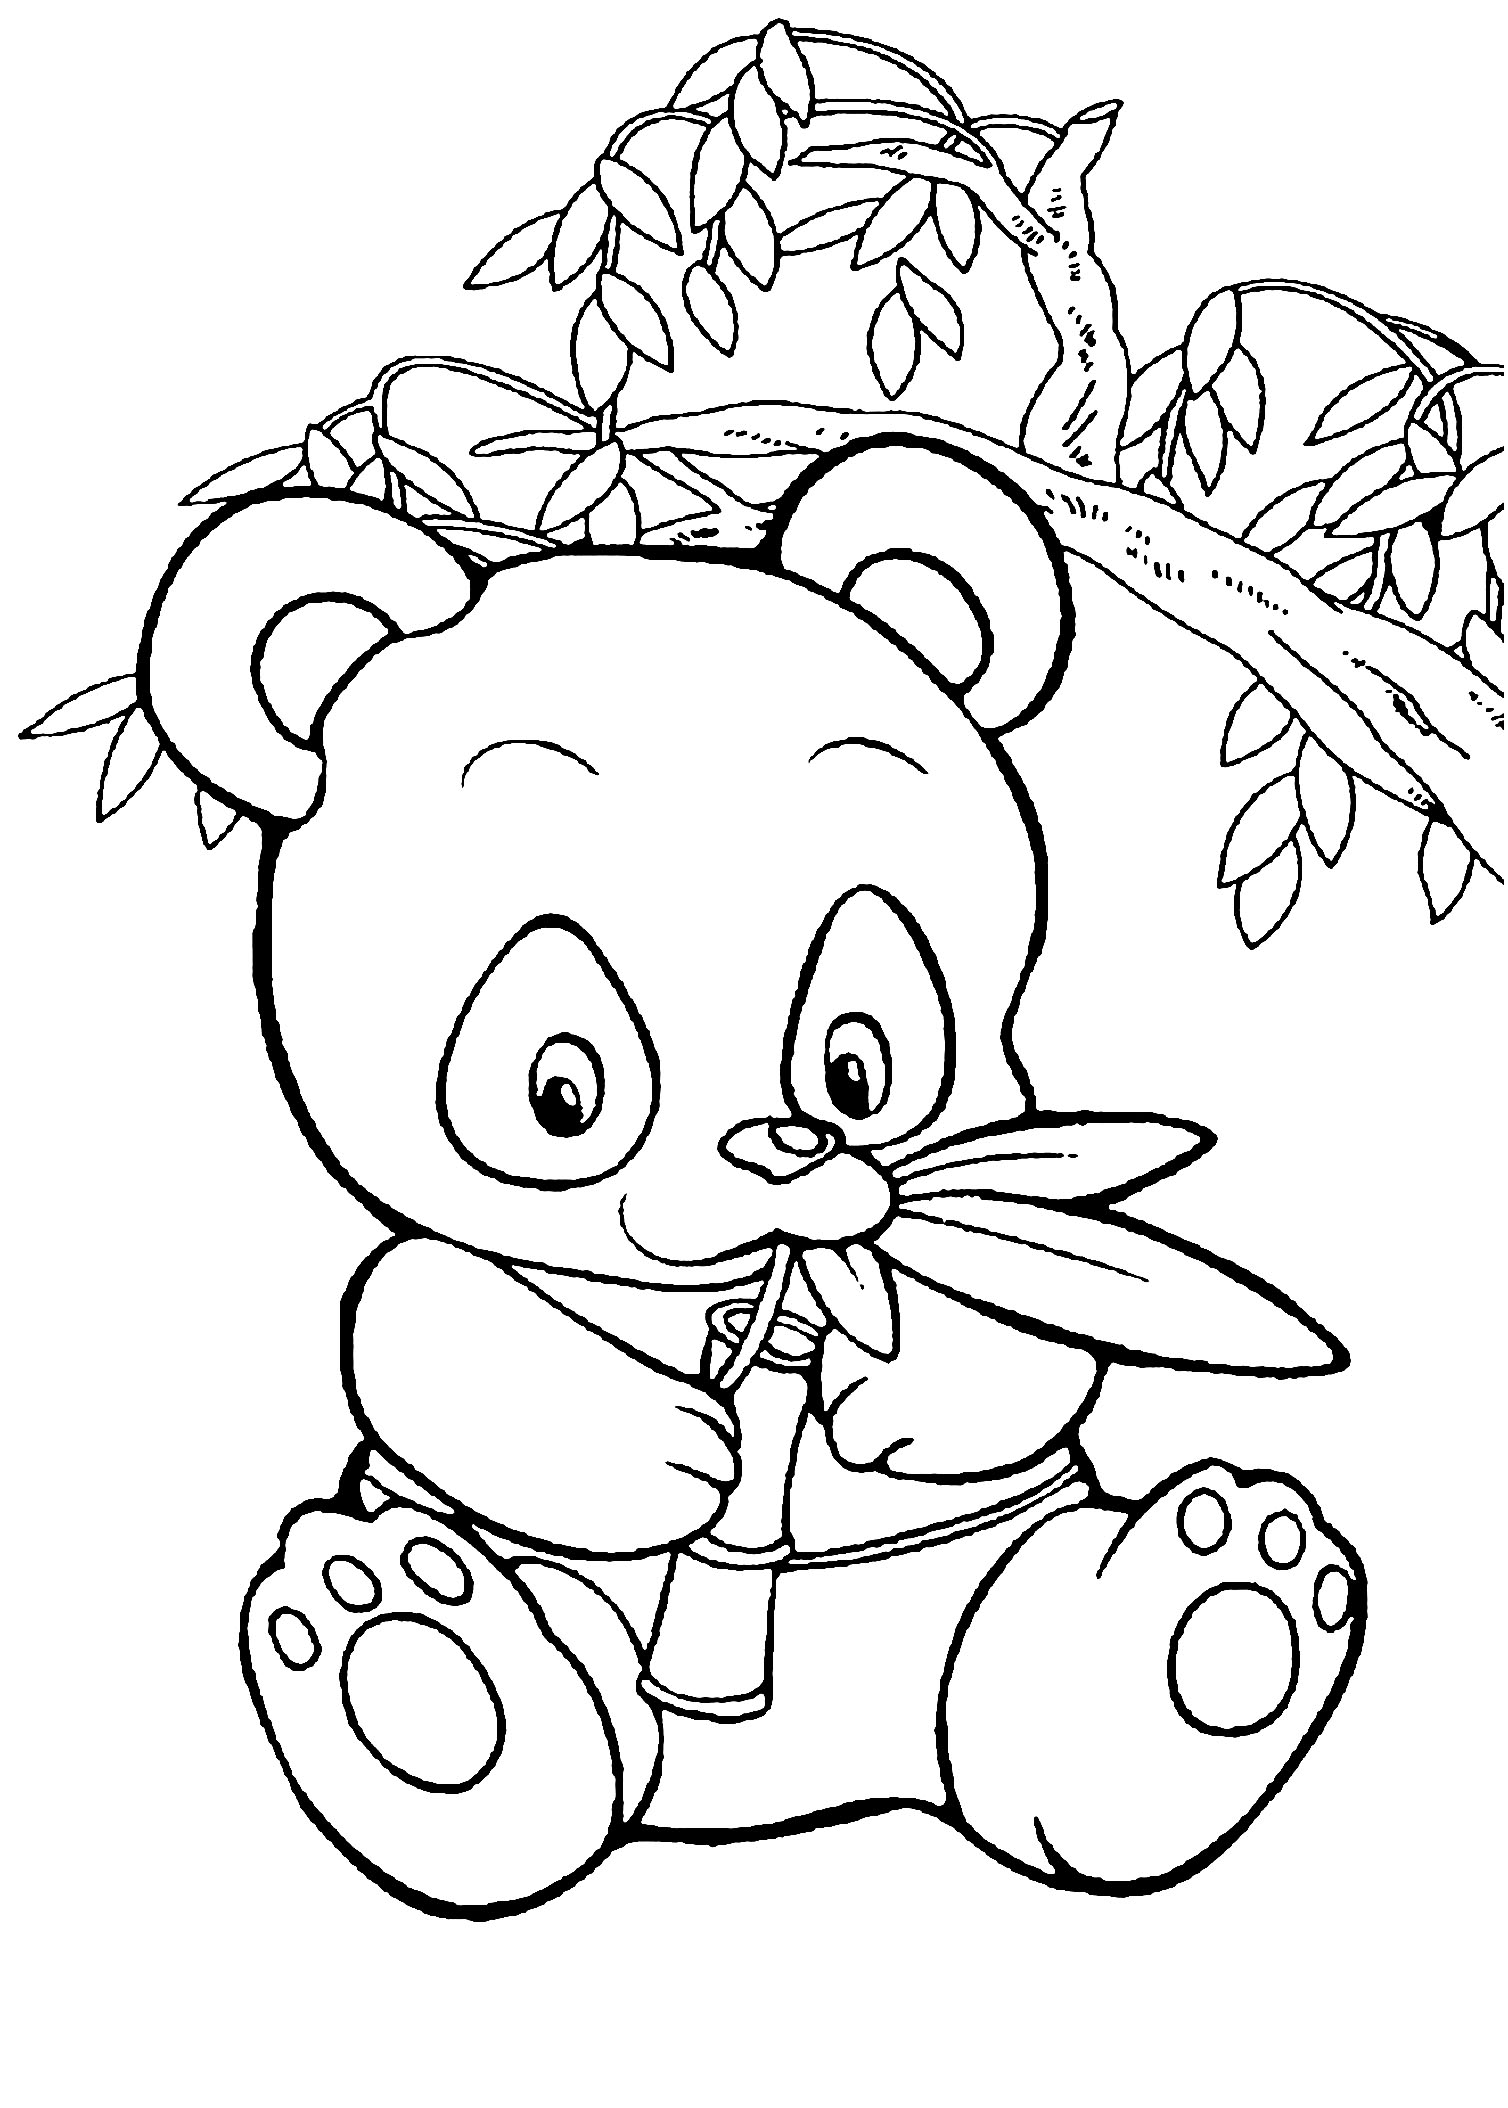 coloring panda picture pandas to color for kids pandas kids coloring pages coloring picture panda